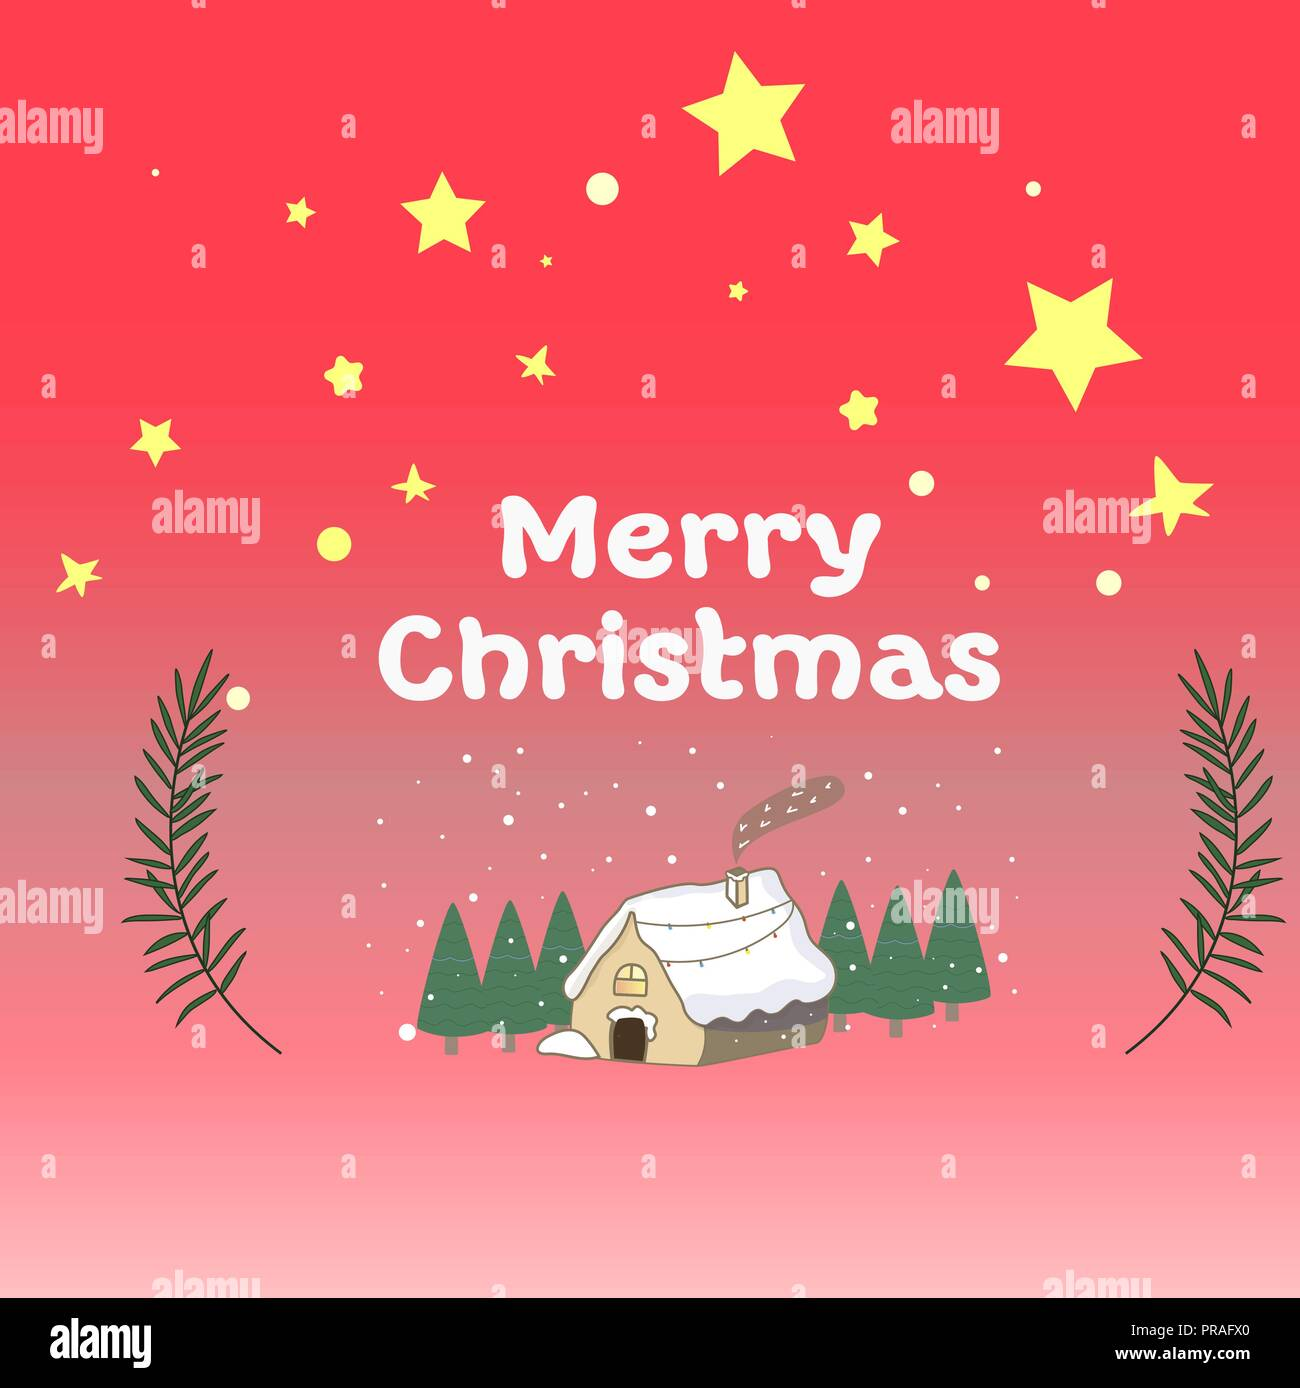 Gingerbread House Stock Vector Images - Alamy